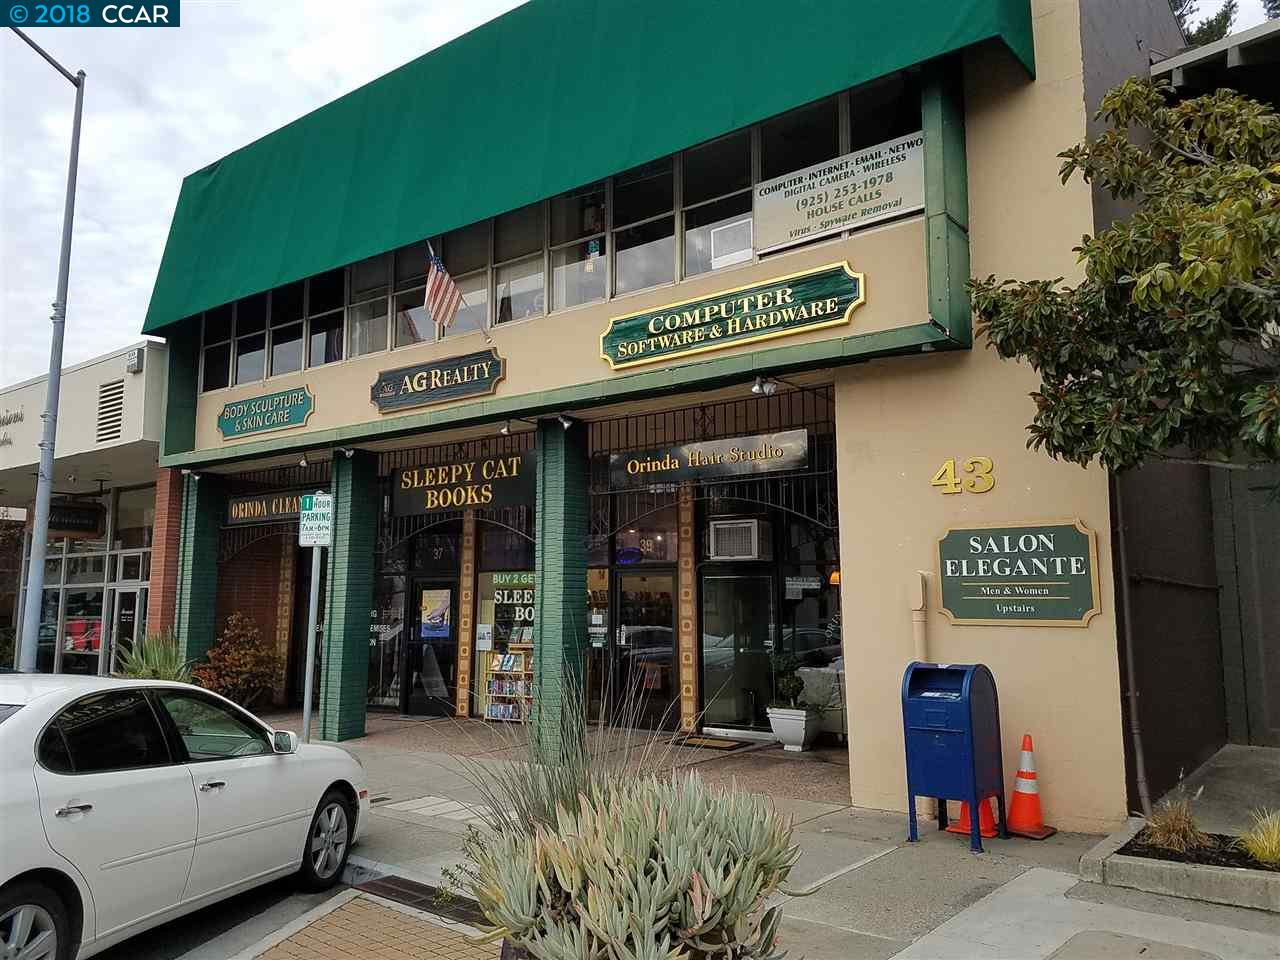 Commercial for Sale at 37 Moraga Way 37 Moraga Way Orinda, California 94563 United States